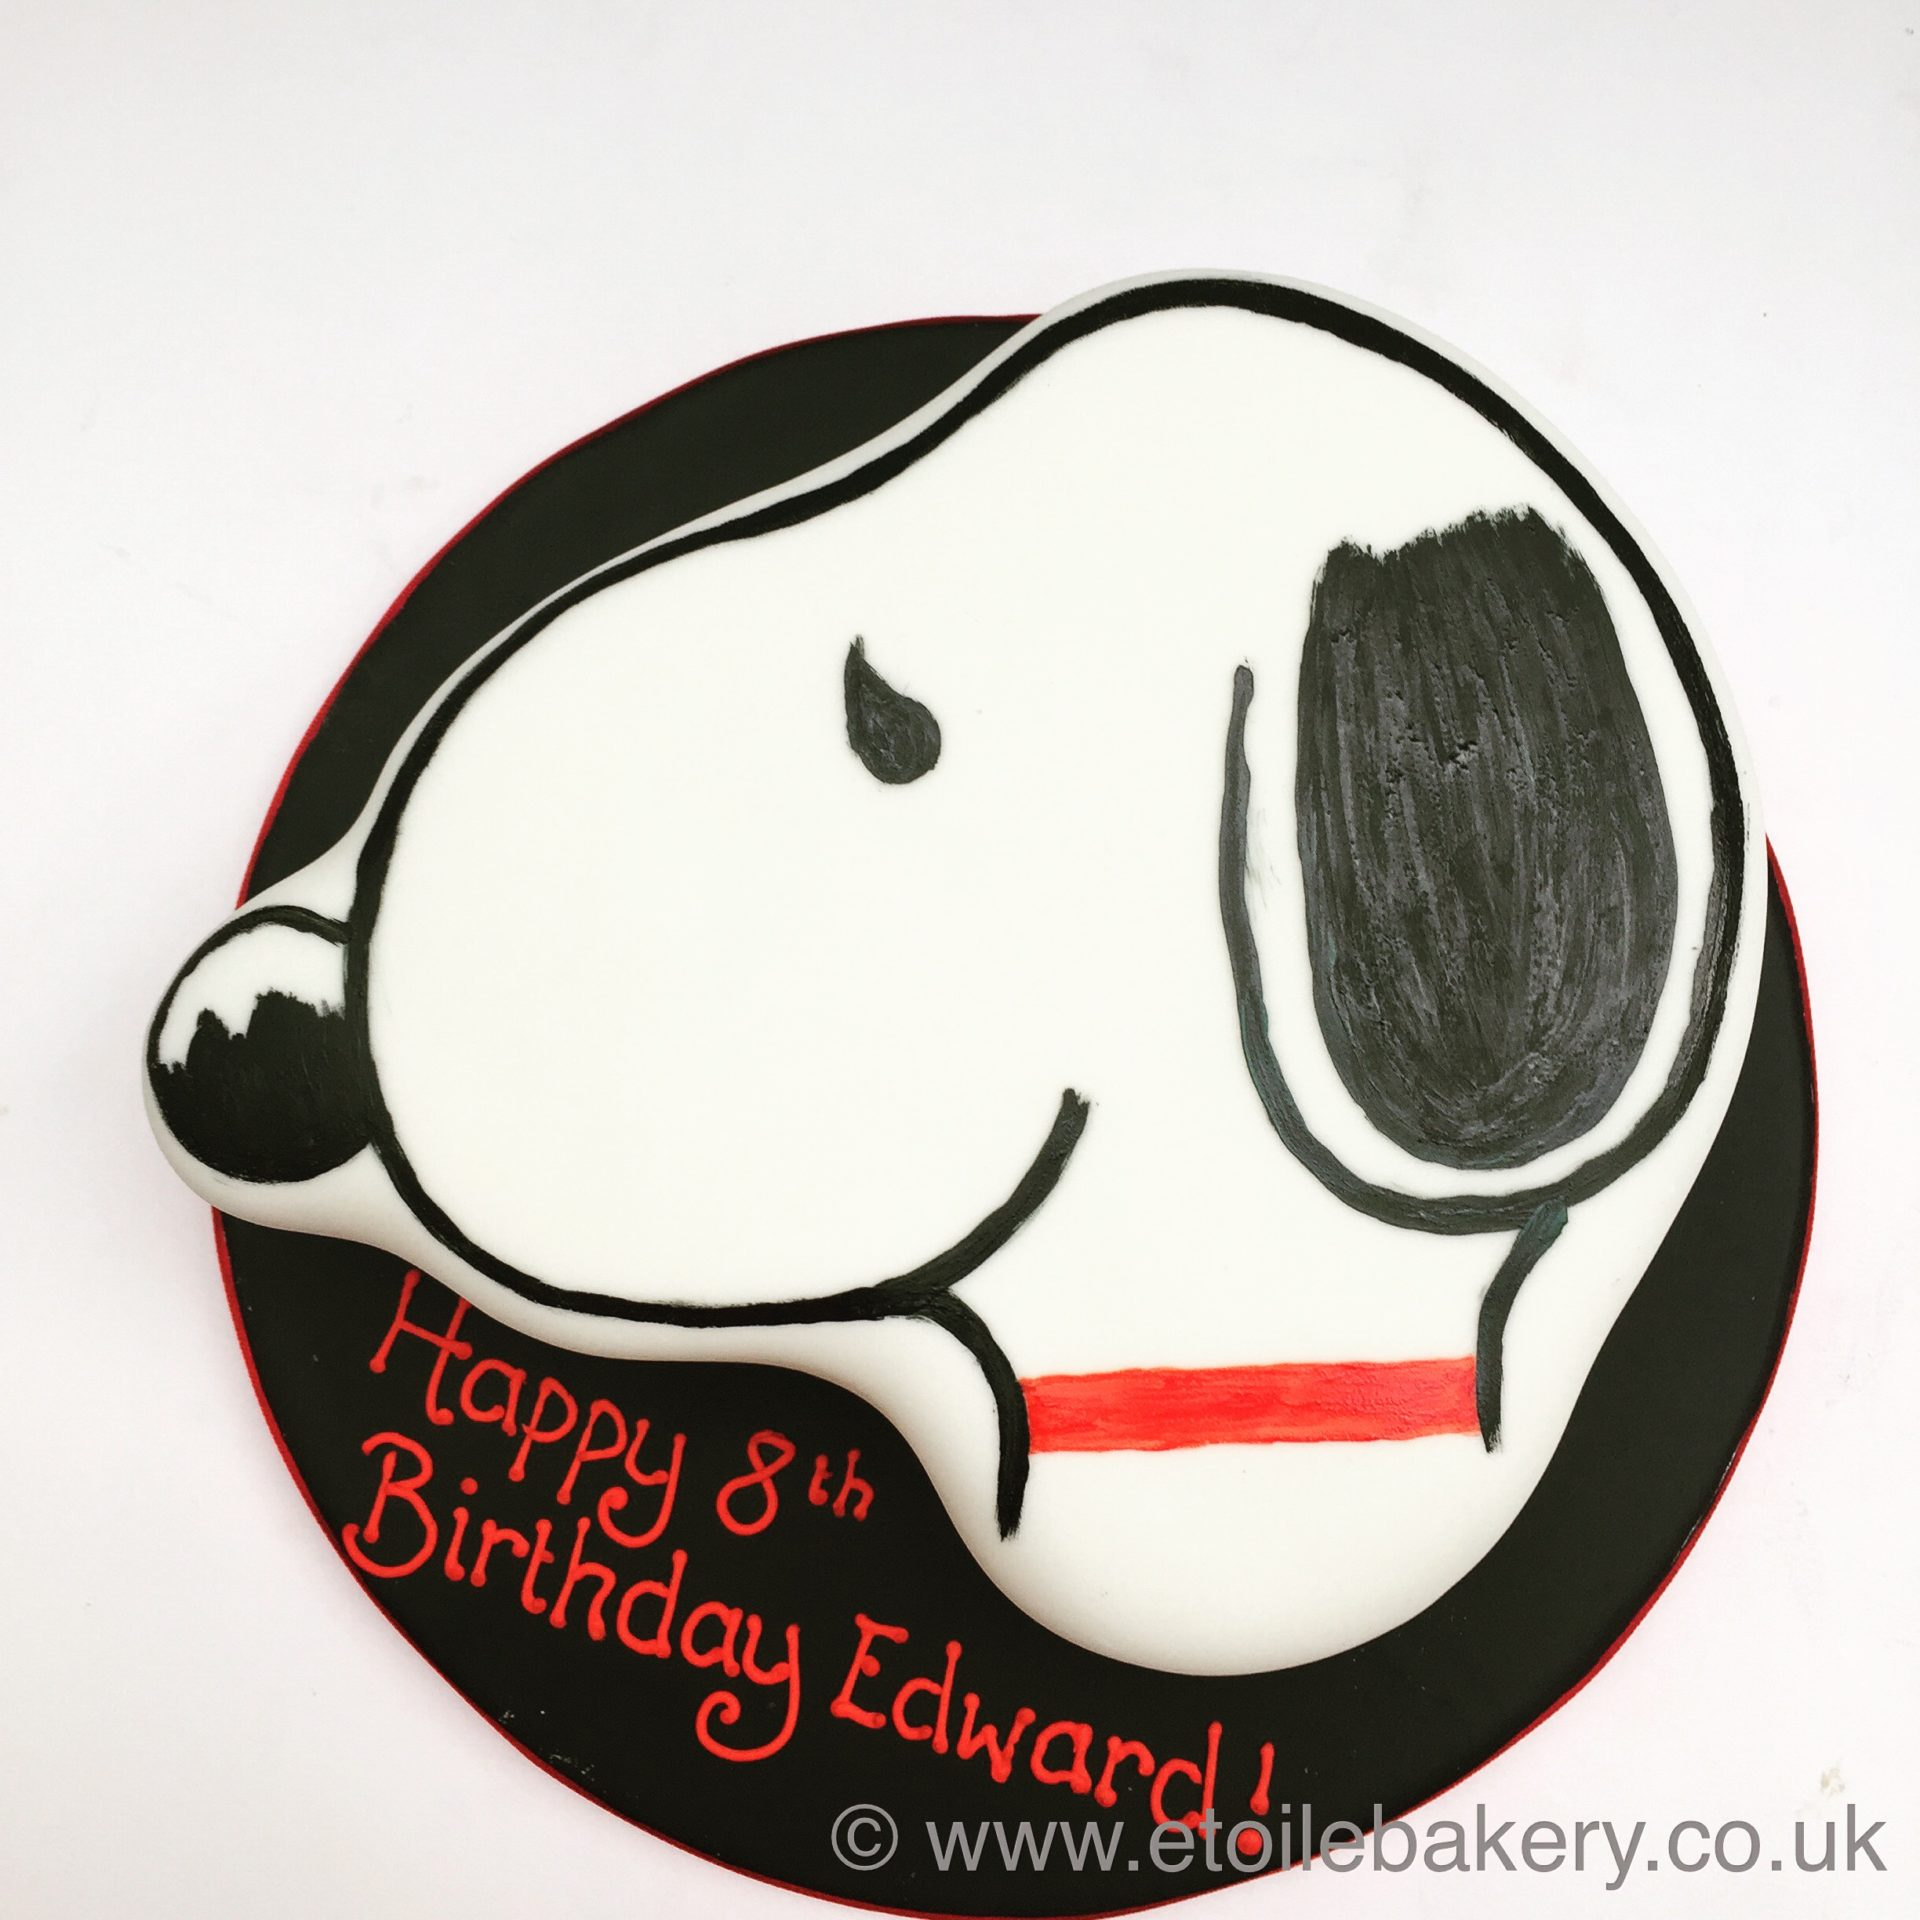 Enjoyable Peanuts Snoopy Birthday Cake London Etoile Bakery Funny Birthday Cards Online Alyptdamsfinfo